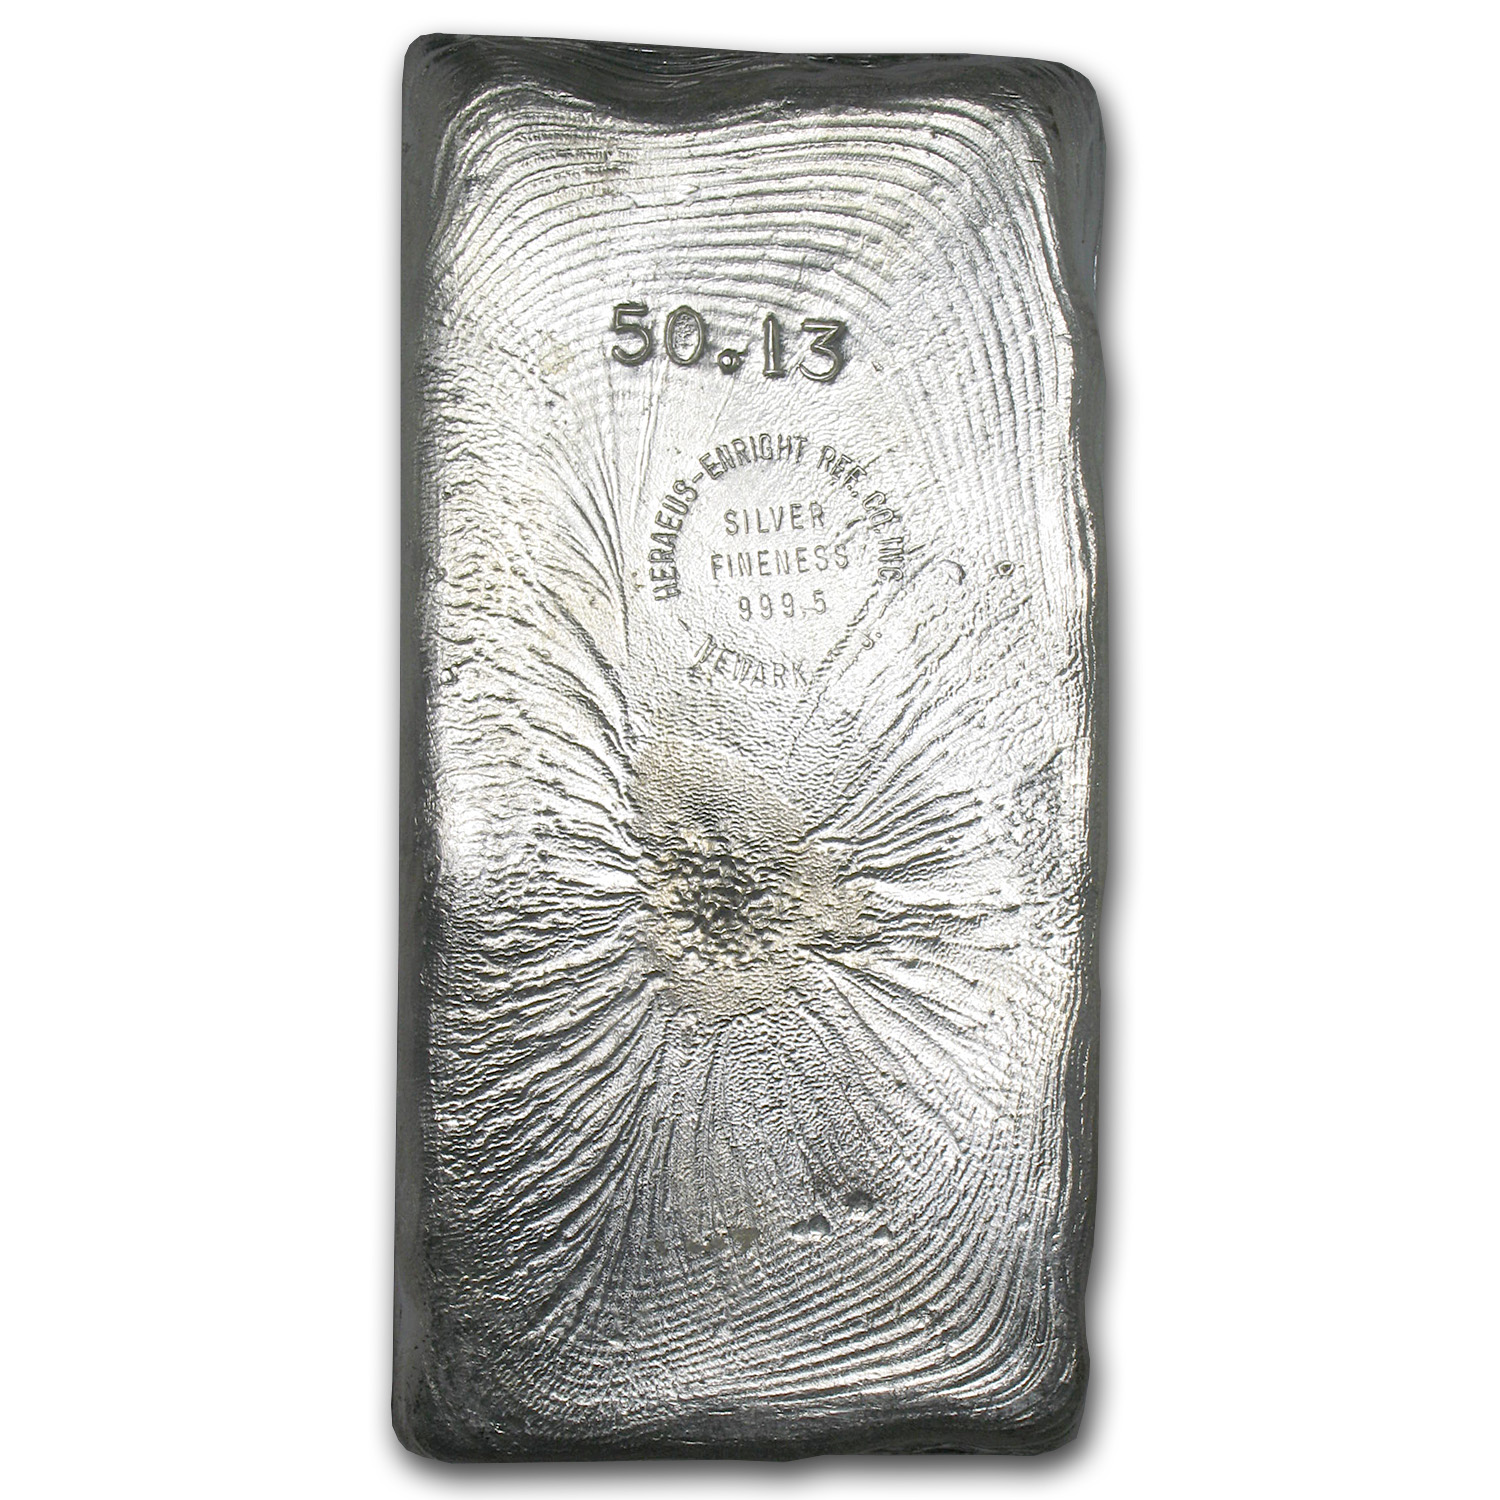 50.13 oz Silver Bars - Heraeus (Poured)